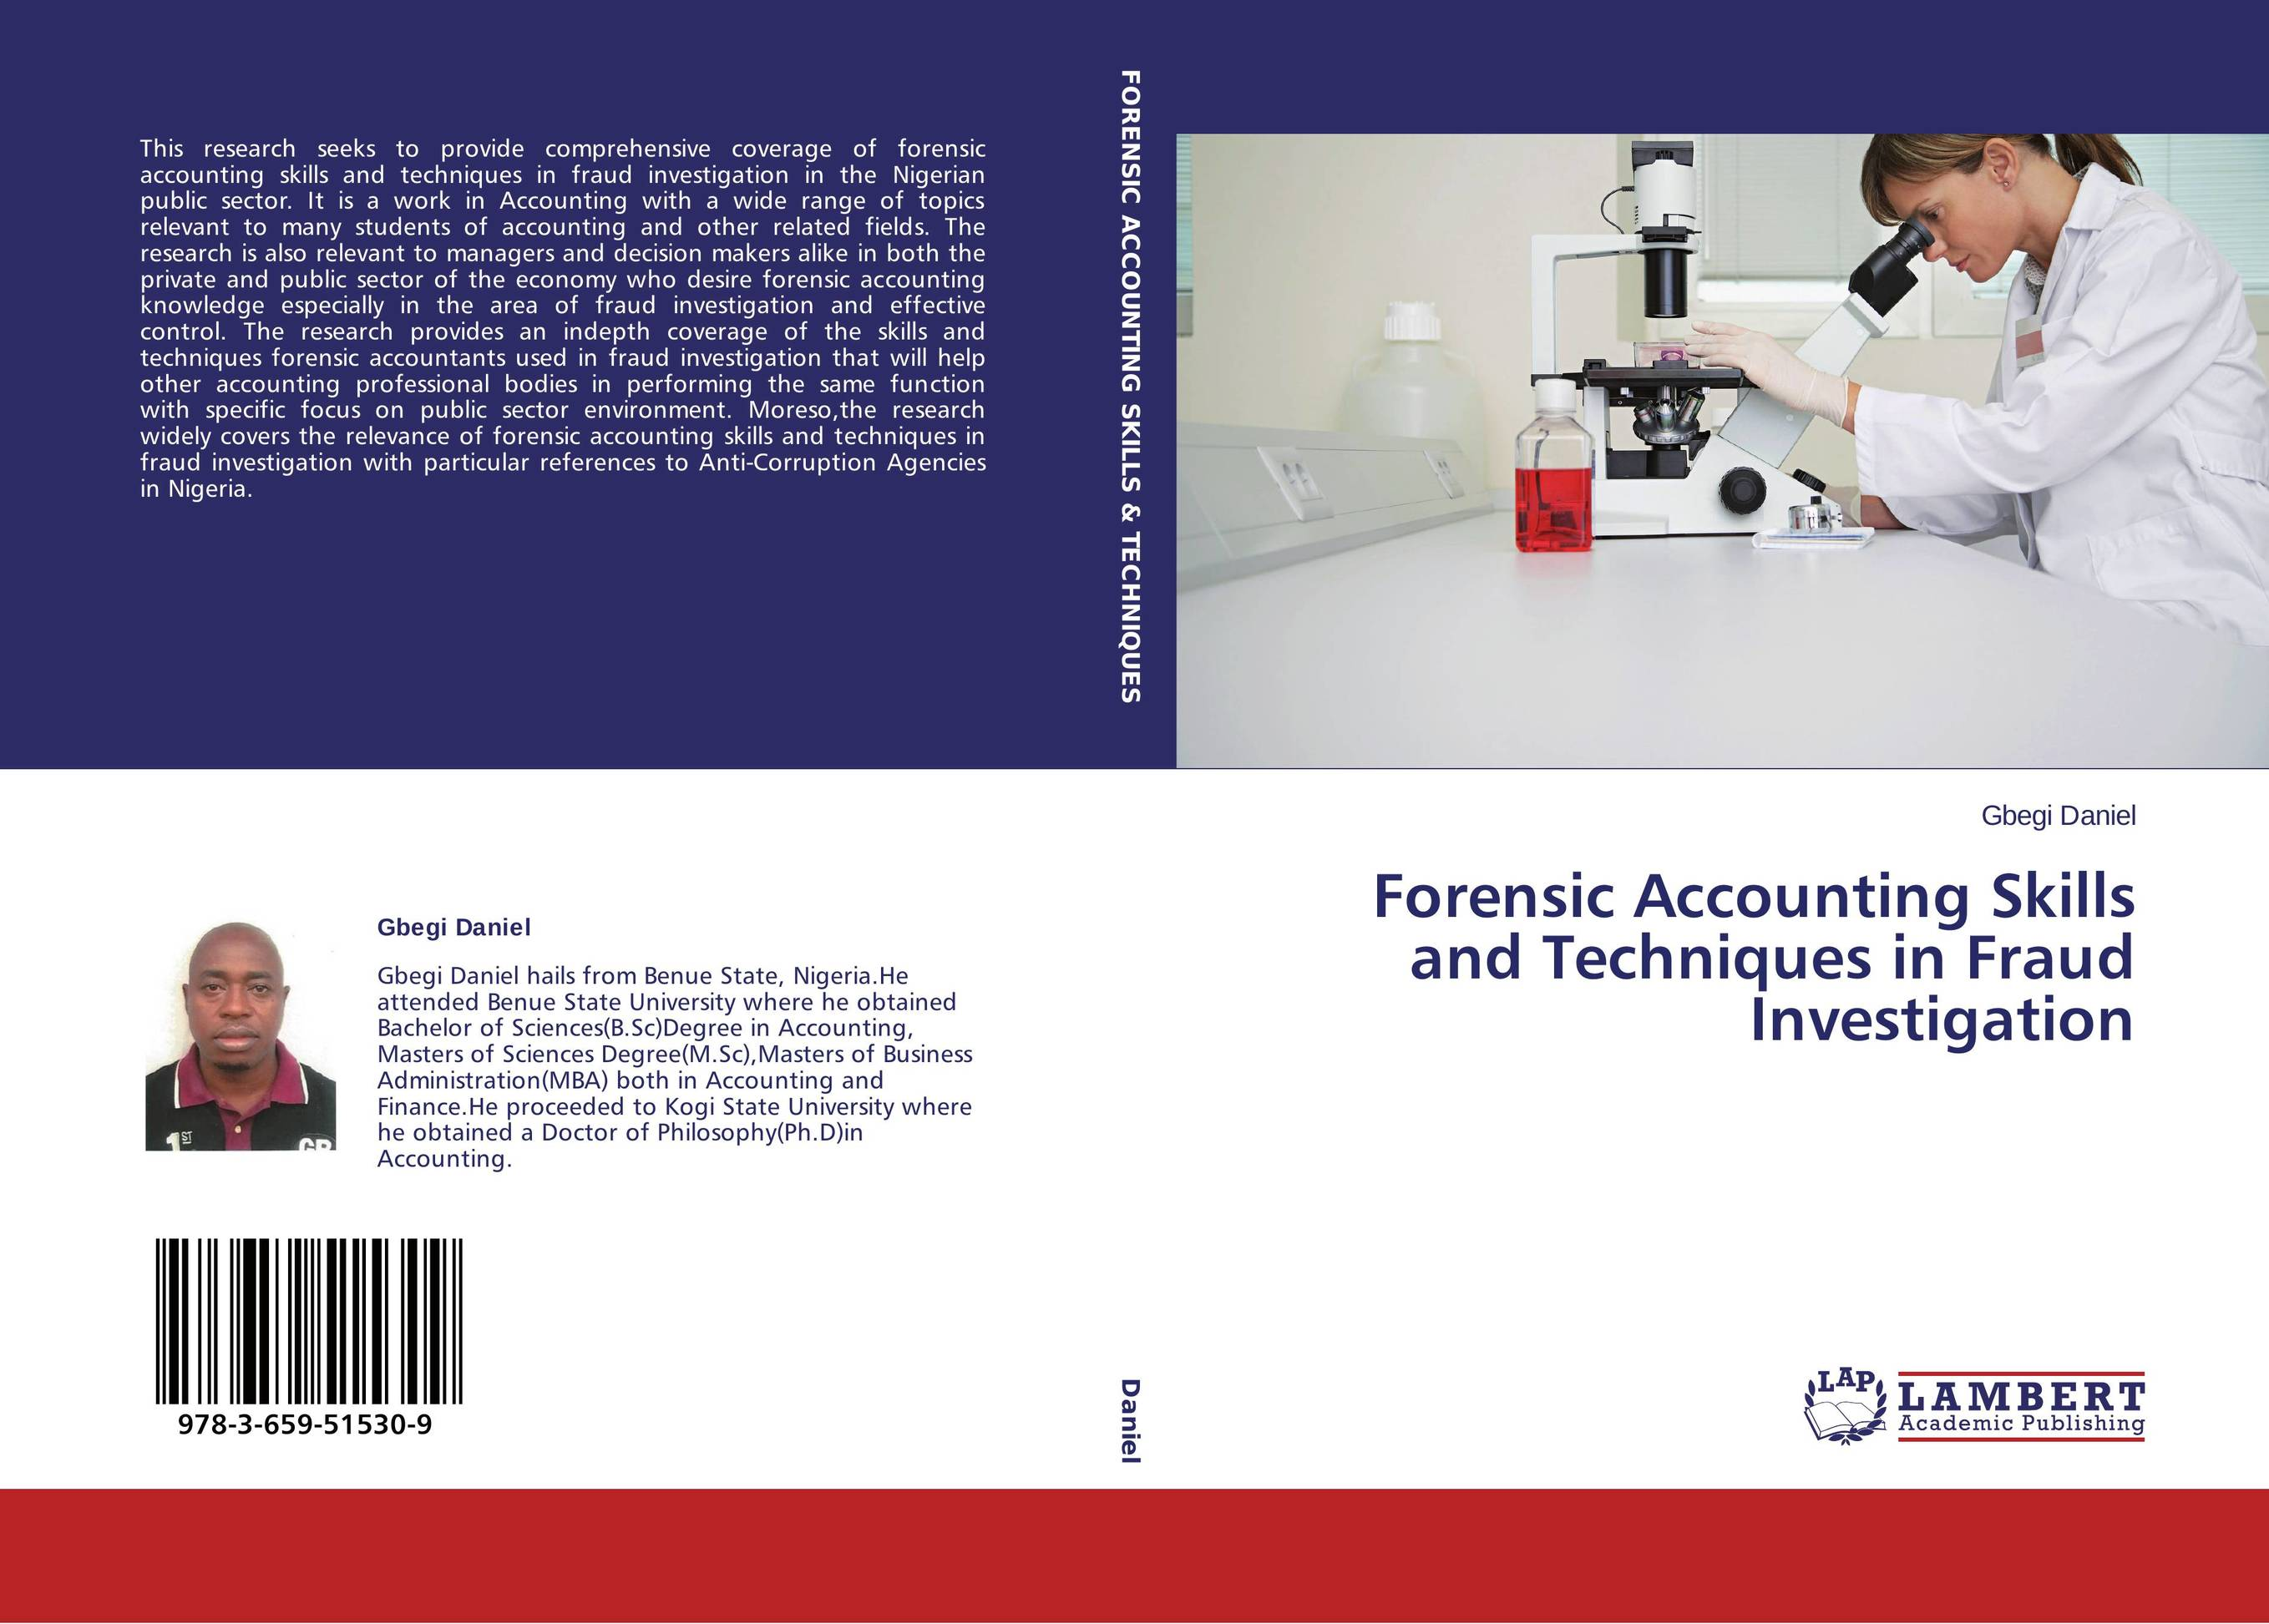 forensic accounting the field of accounting The forensic accounting certificate program provides a 12 hours graduate-level experience in the forensic accounting field the program involves in depth study of forensic accounting and information technology topics, including fraud examination, litigation support, financial expert witnessing, business valuation, investigative data mining and.